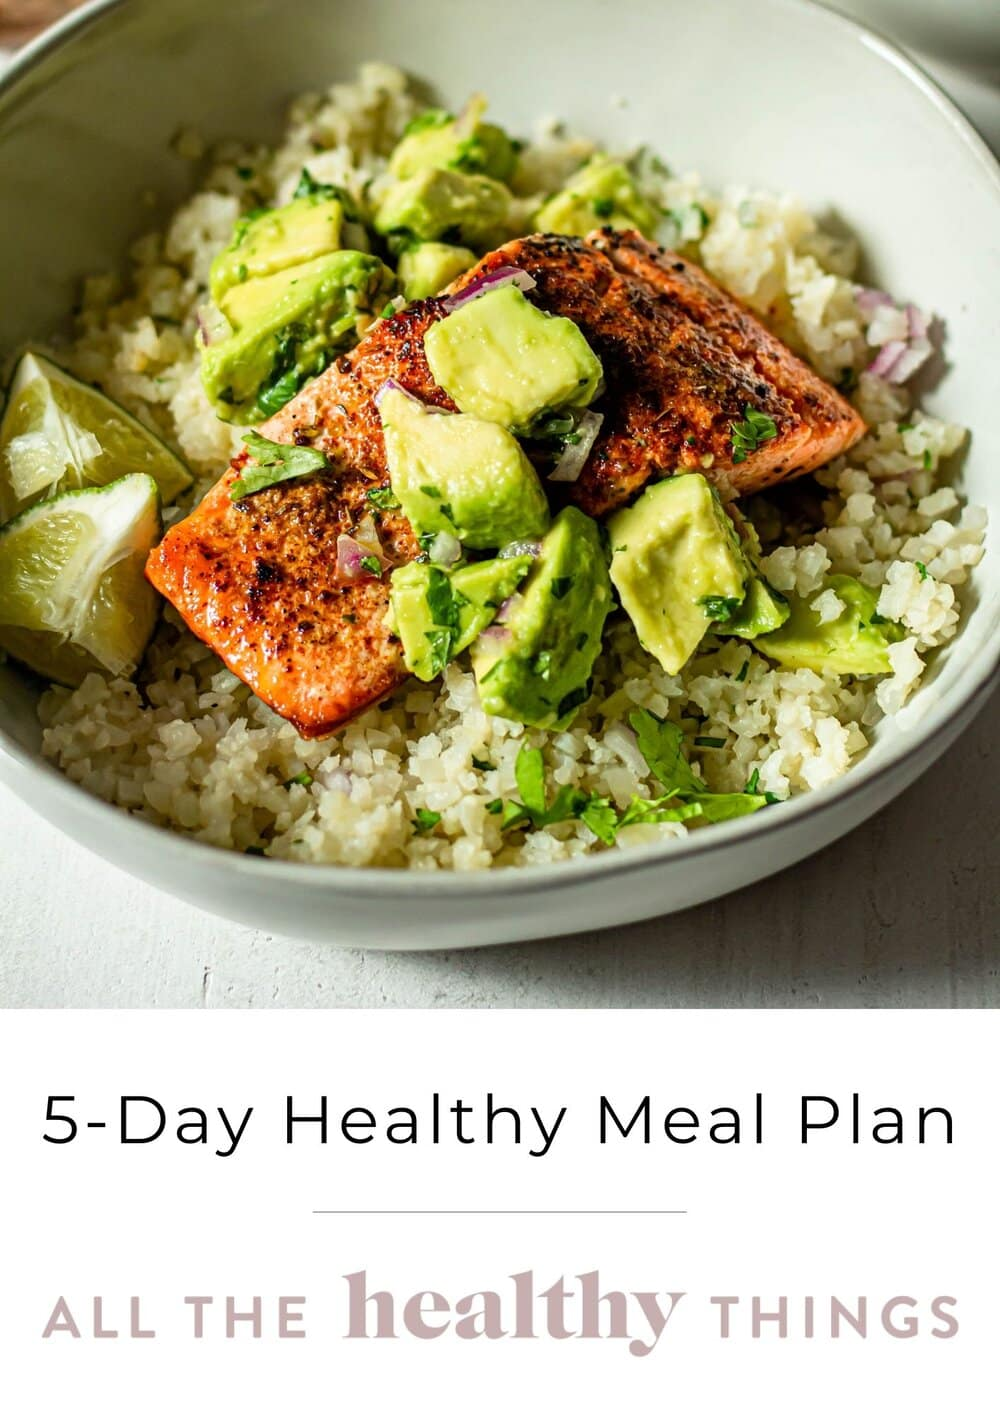 All the Healthy Things 5-Day Healthy Meal Plan-12.jpg